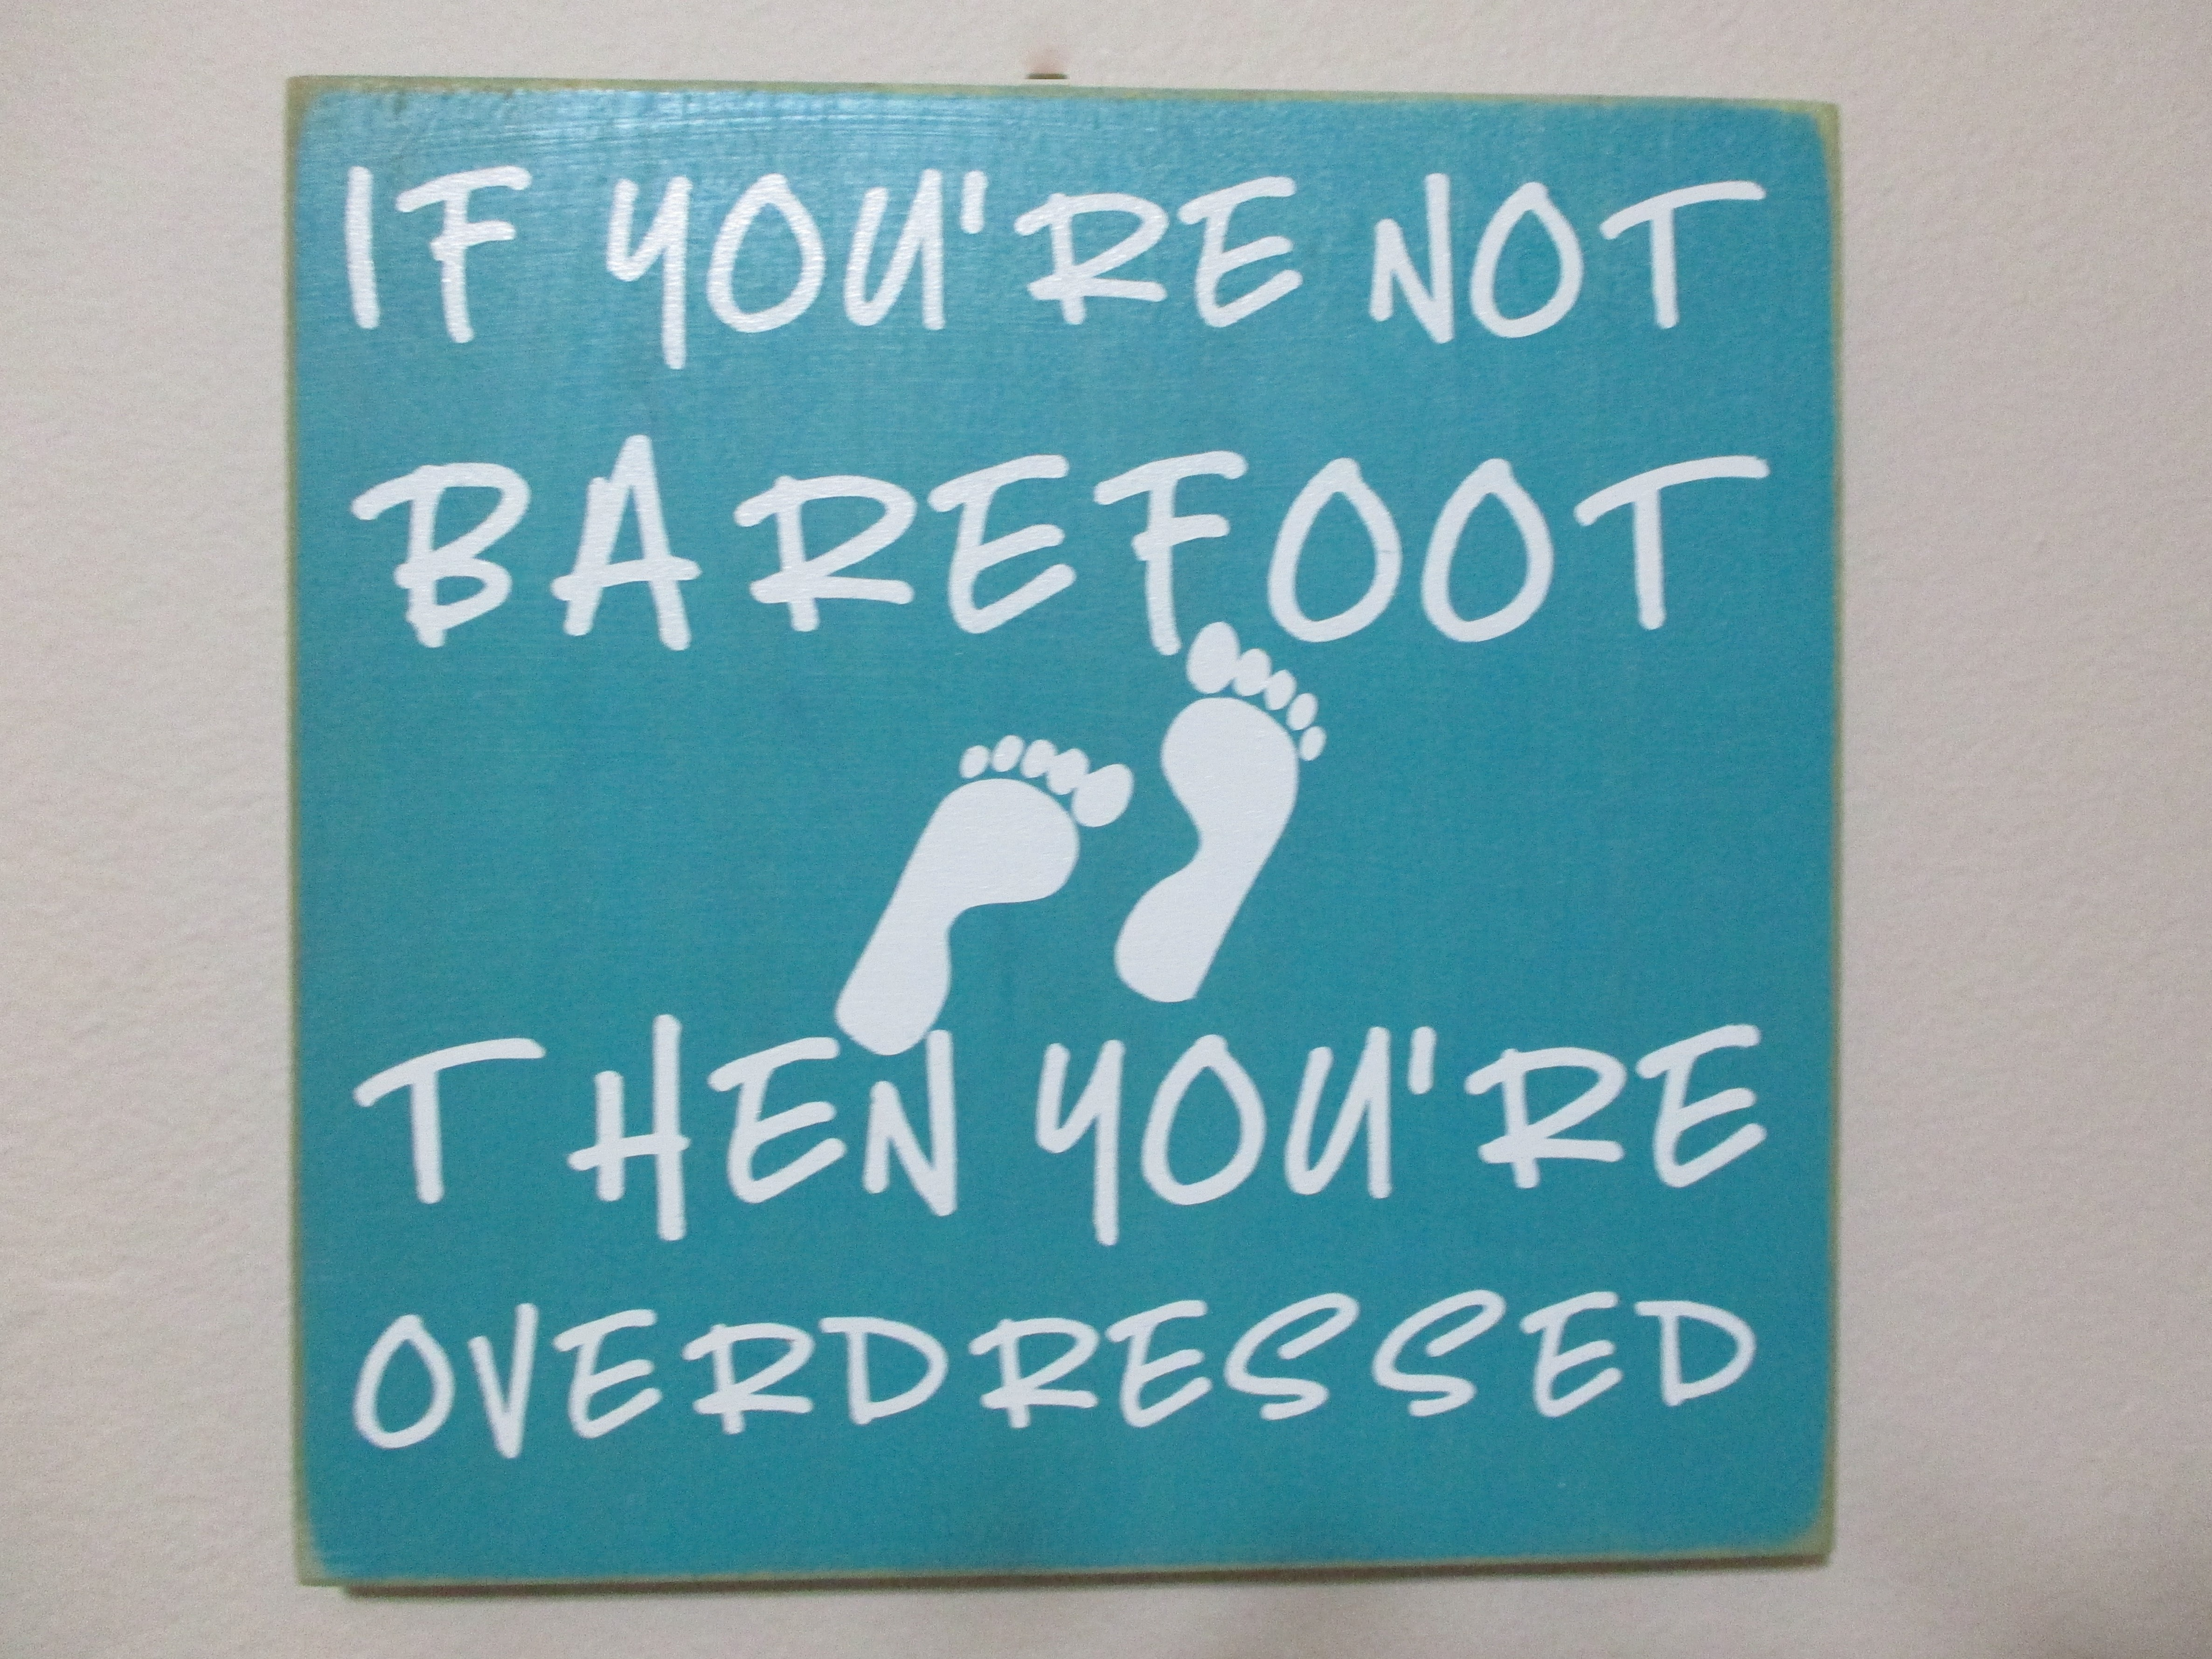 If you're not barefoot then you're overdressed- Calypso